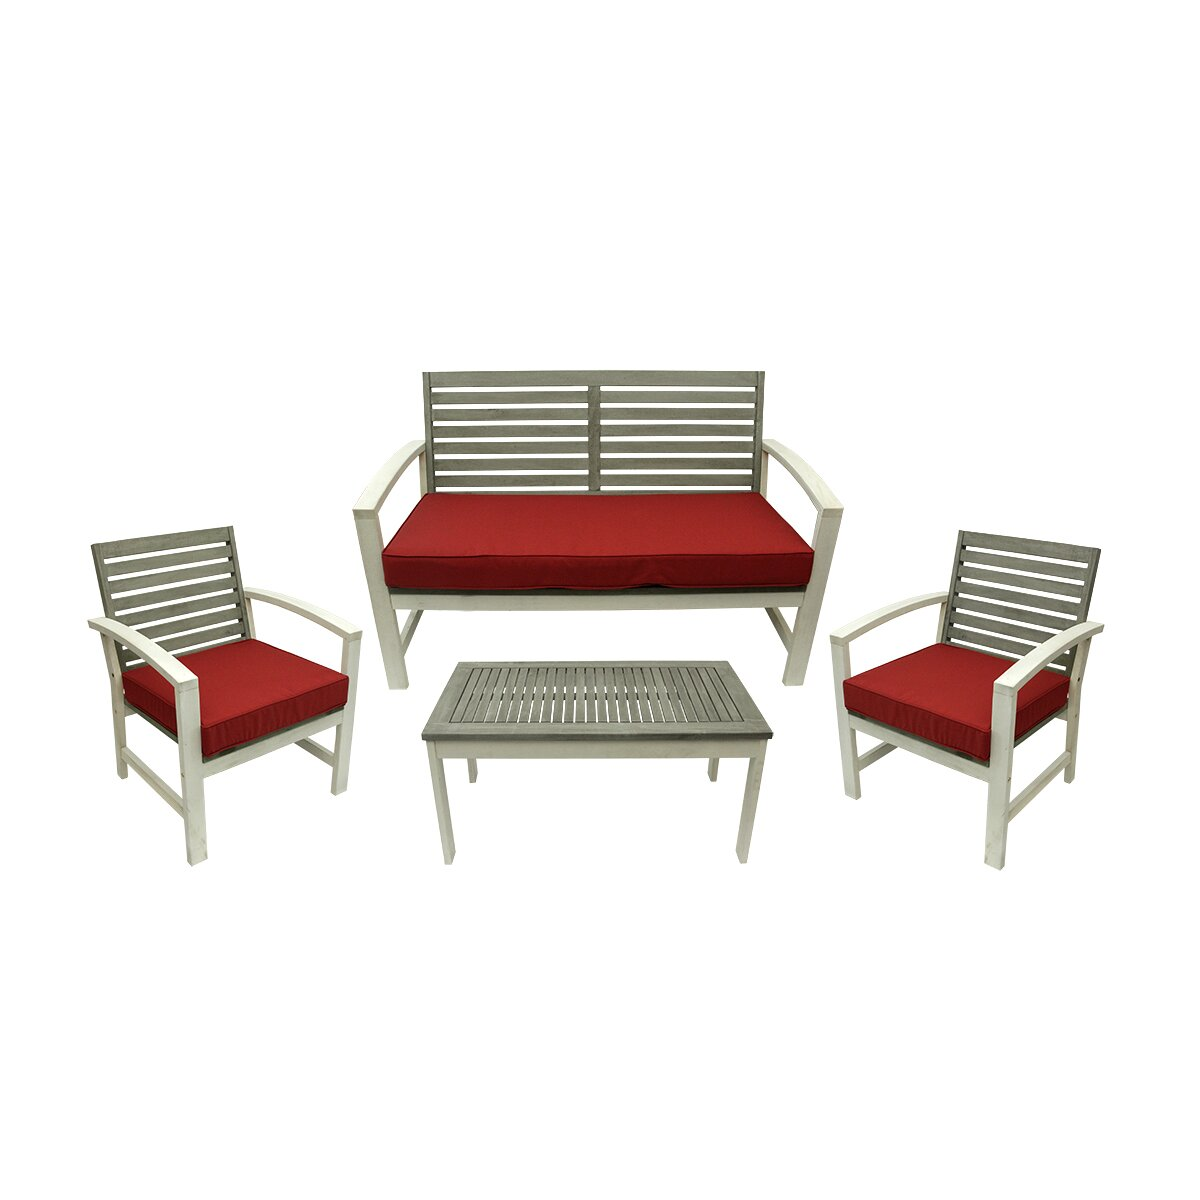 Northlight 4 piece acacia wood outdoor furniture set wayfair for Outdoor furniture 4 piece